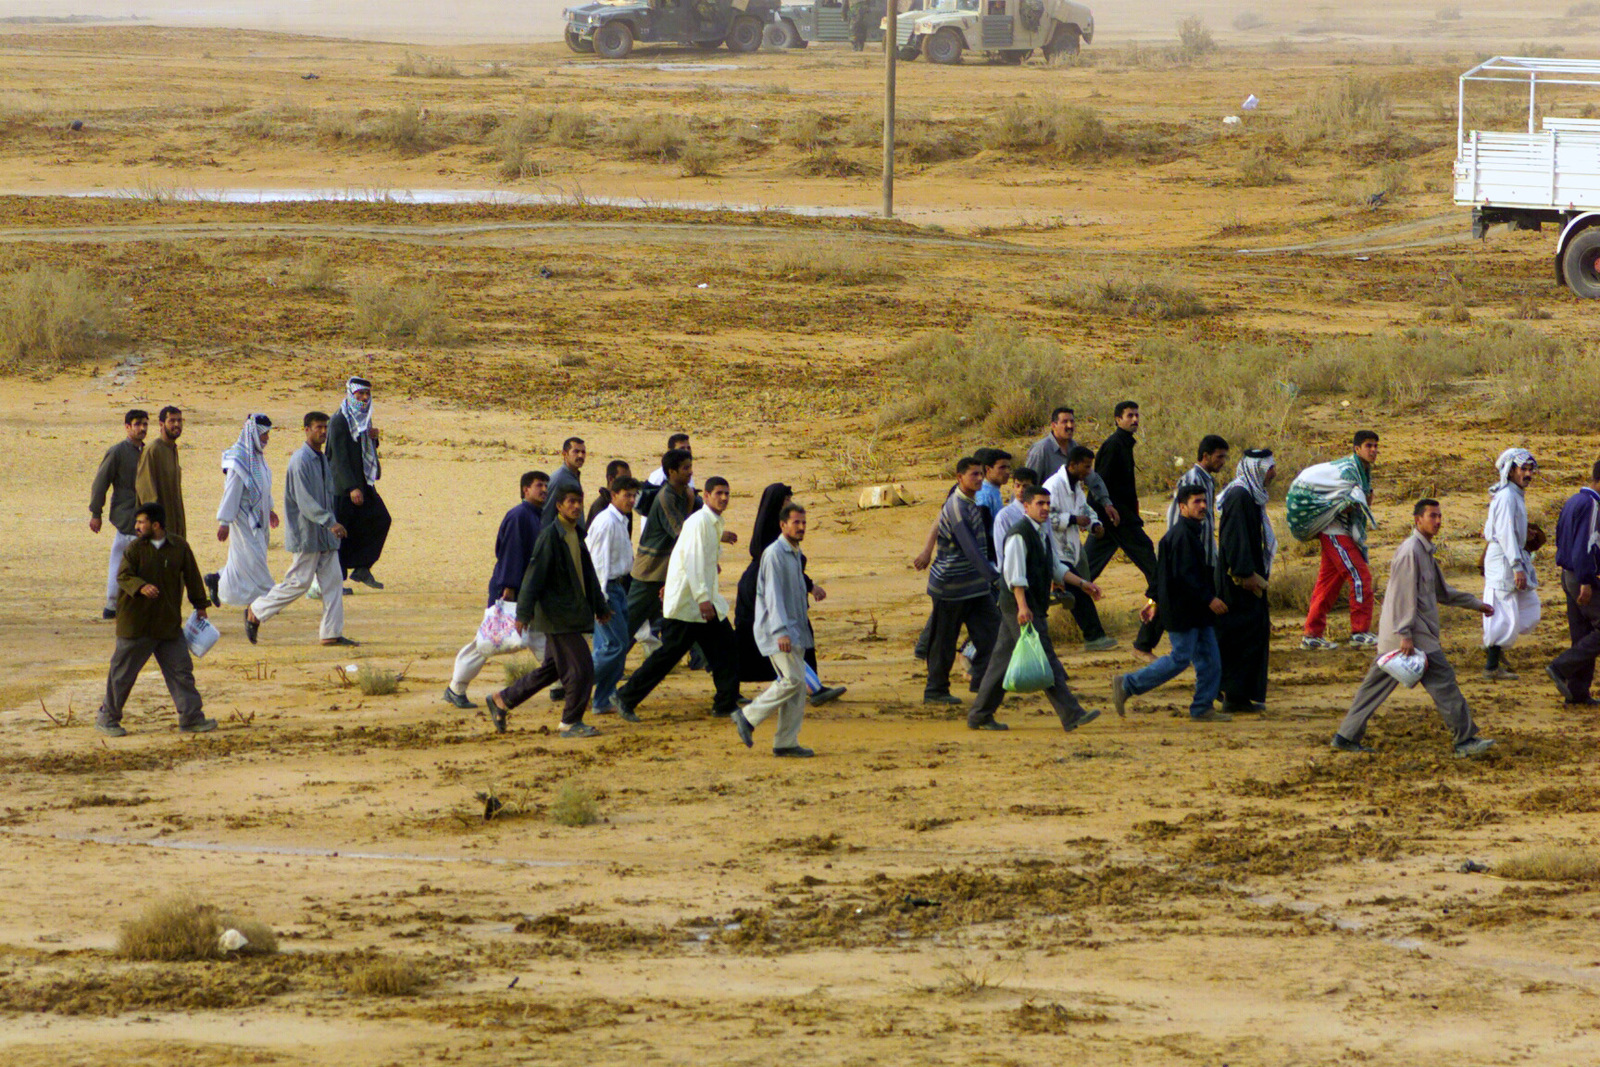 Iraqi Refugees walk across the intersection of Highway 27 and Highway 6, during Operation IRAQI FREEDOM